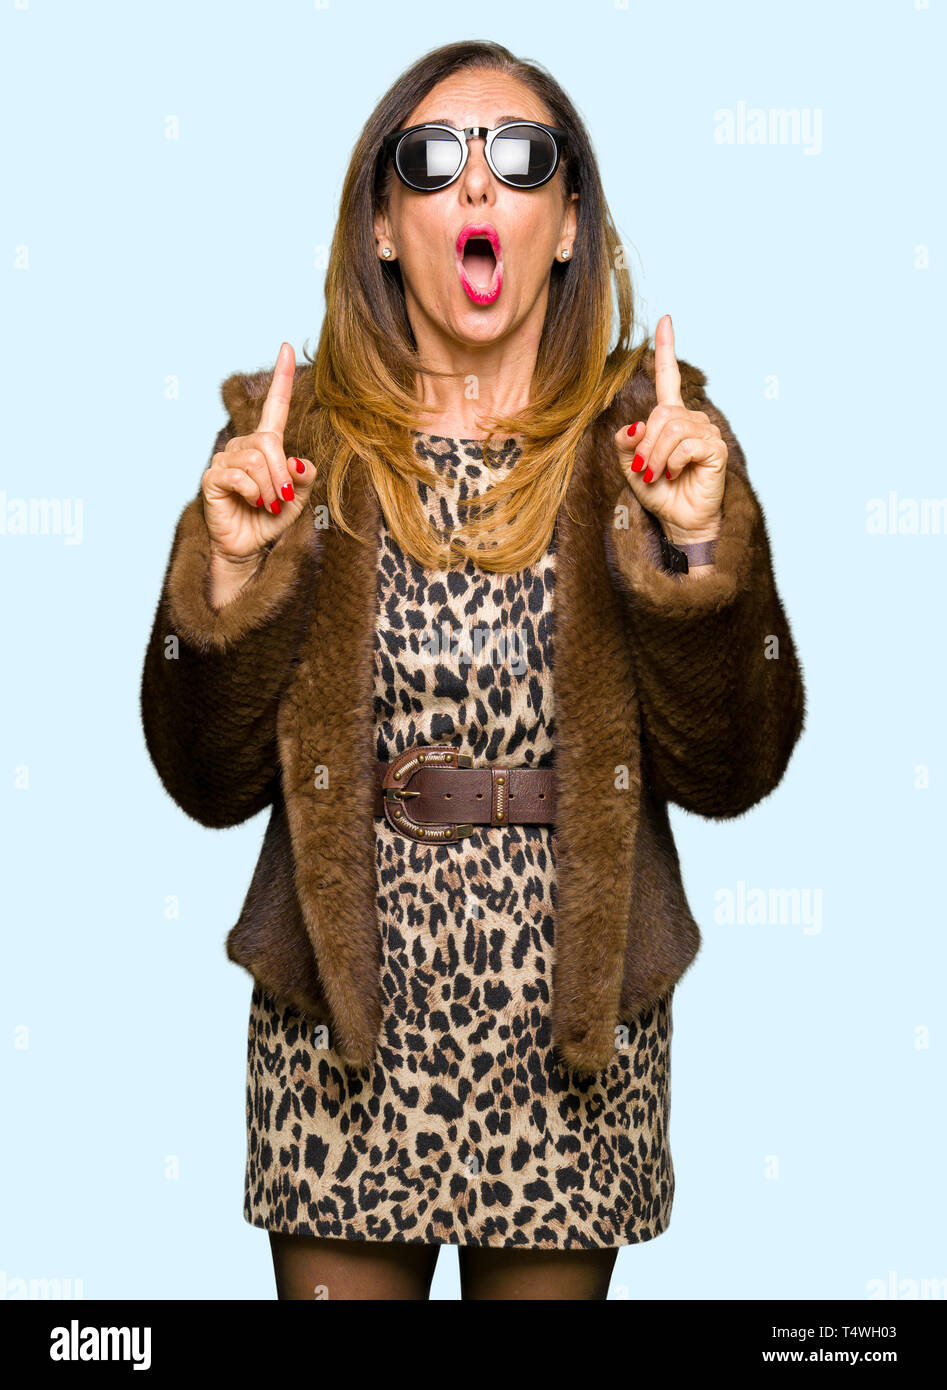 Beautiful middle age elegant woman wearing sunglasses and mink coat amazed and surprised looking up and pointing with fingers and raised arms. Stock Photo